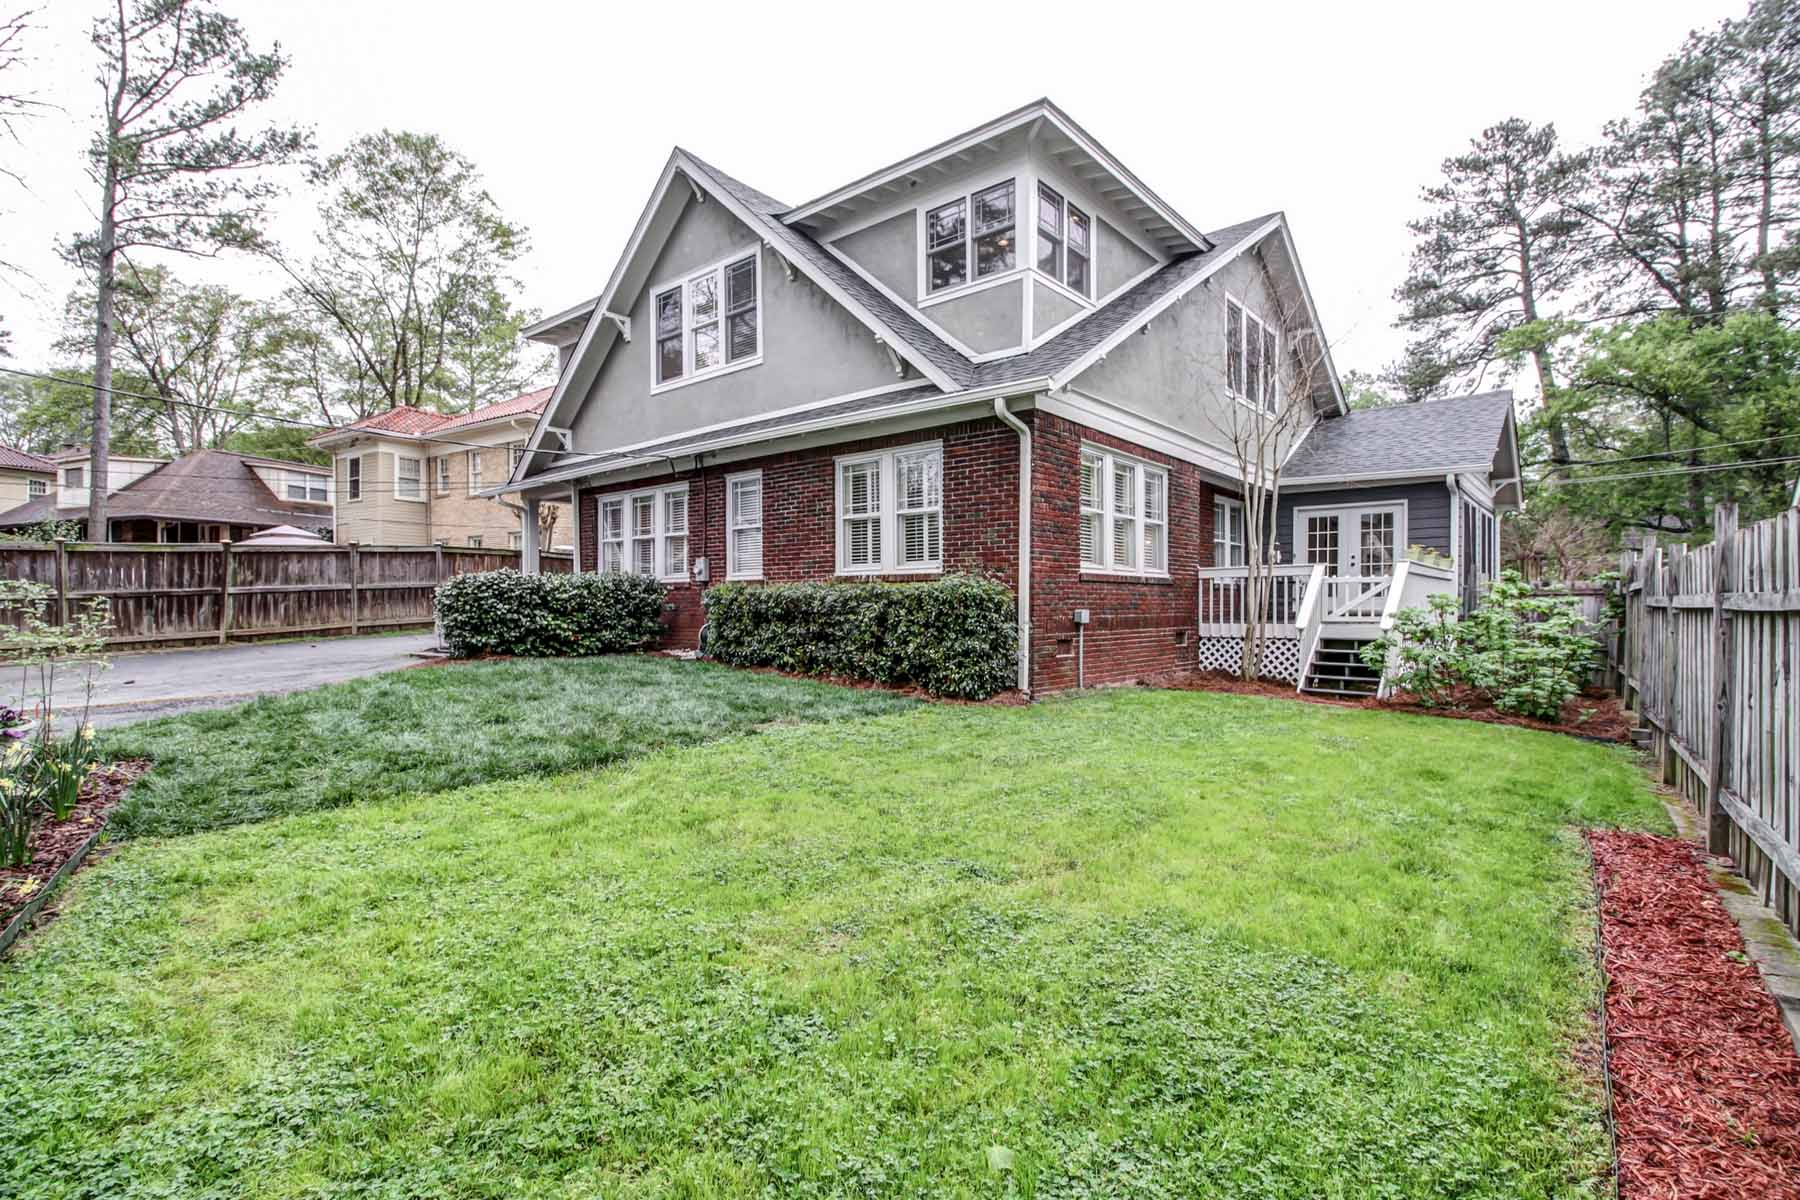 獨棟家庭住宅 為 出售 在 This expanded and renovated 1923 Craftsman will exceed all your expectations! 1281 Oxford Road NE Druid Hills, Atlanta, 喬治亞州, 30306 美國